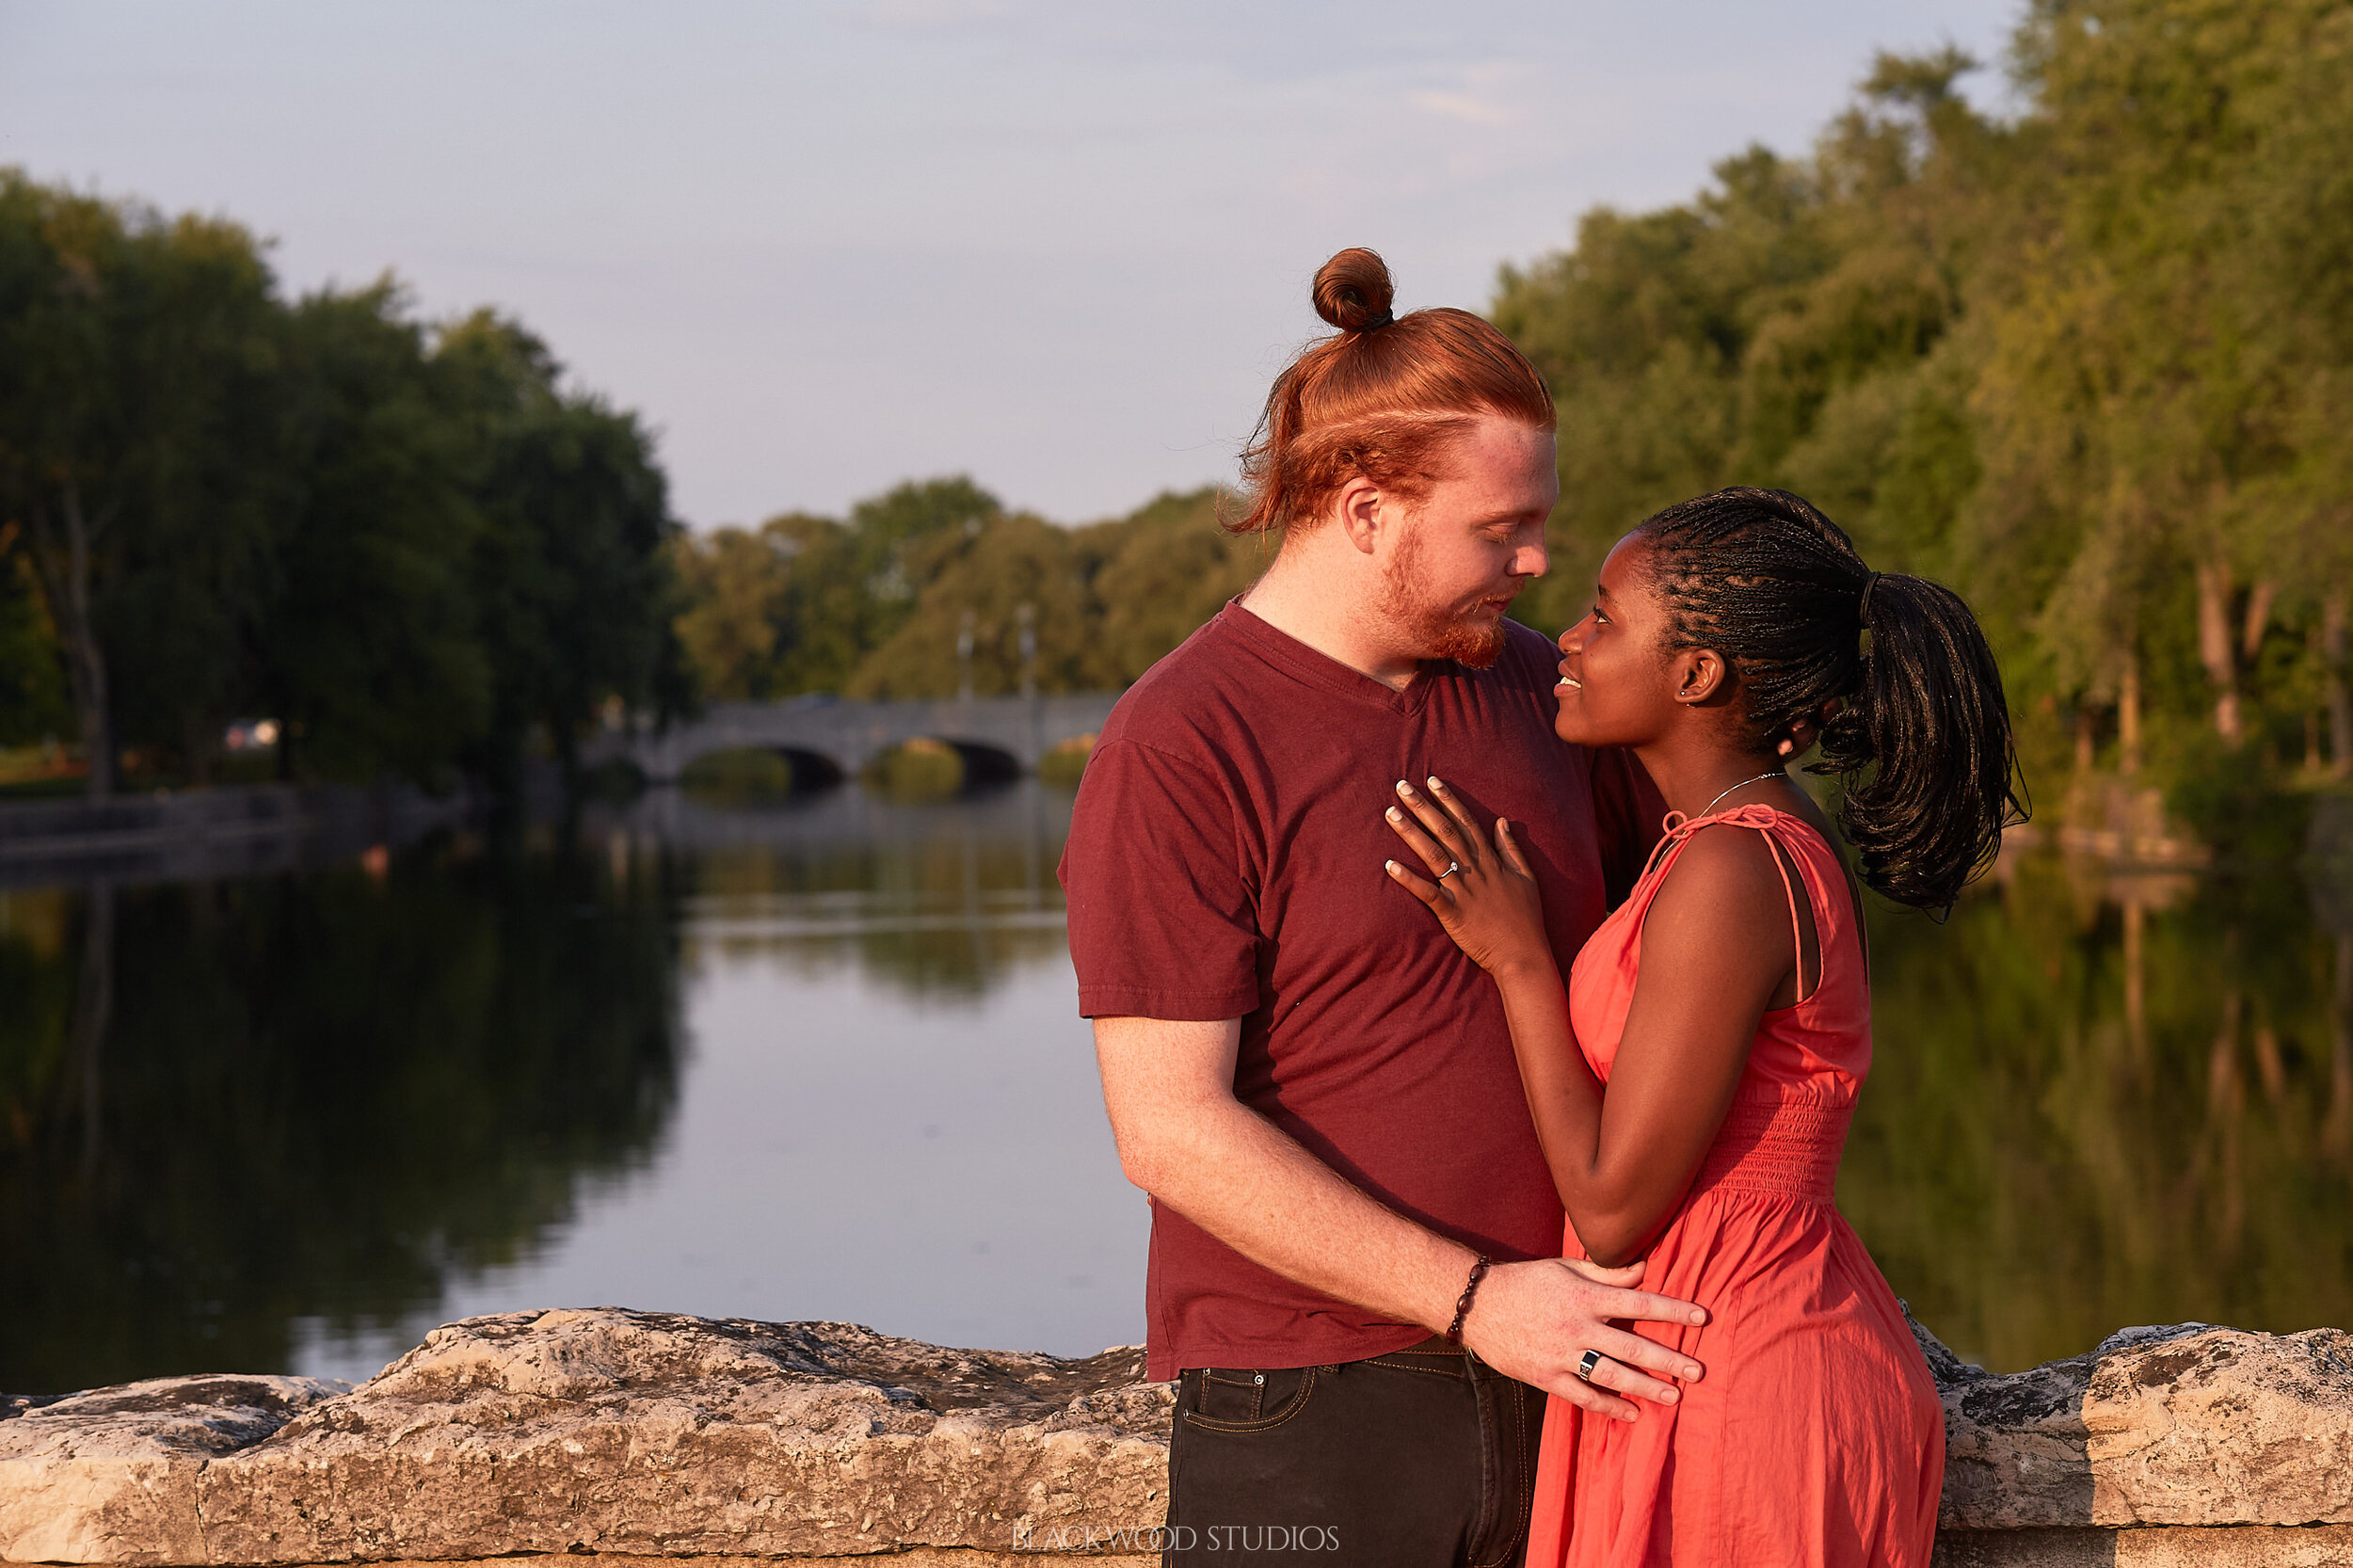 Curren and Jeremy Engagement Session at Royal City Park, Guelph, Ontario. Photo by Blackwood Studios (blackwoodstudios.co)